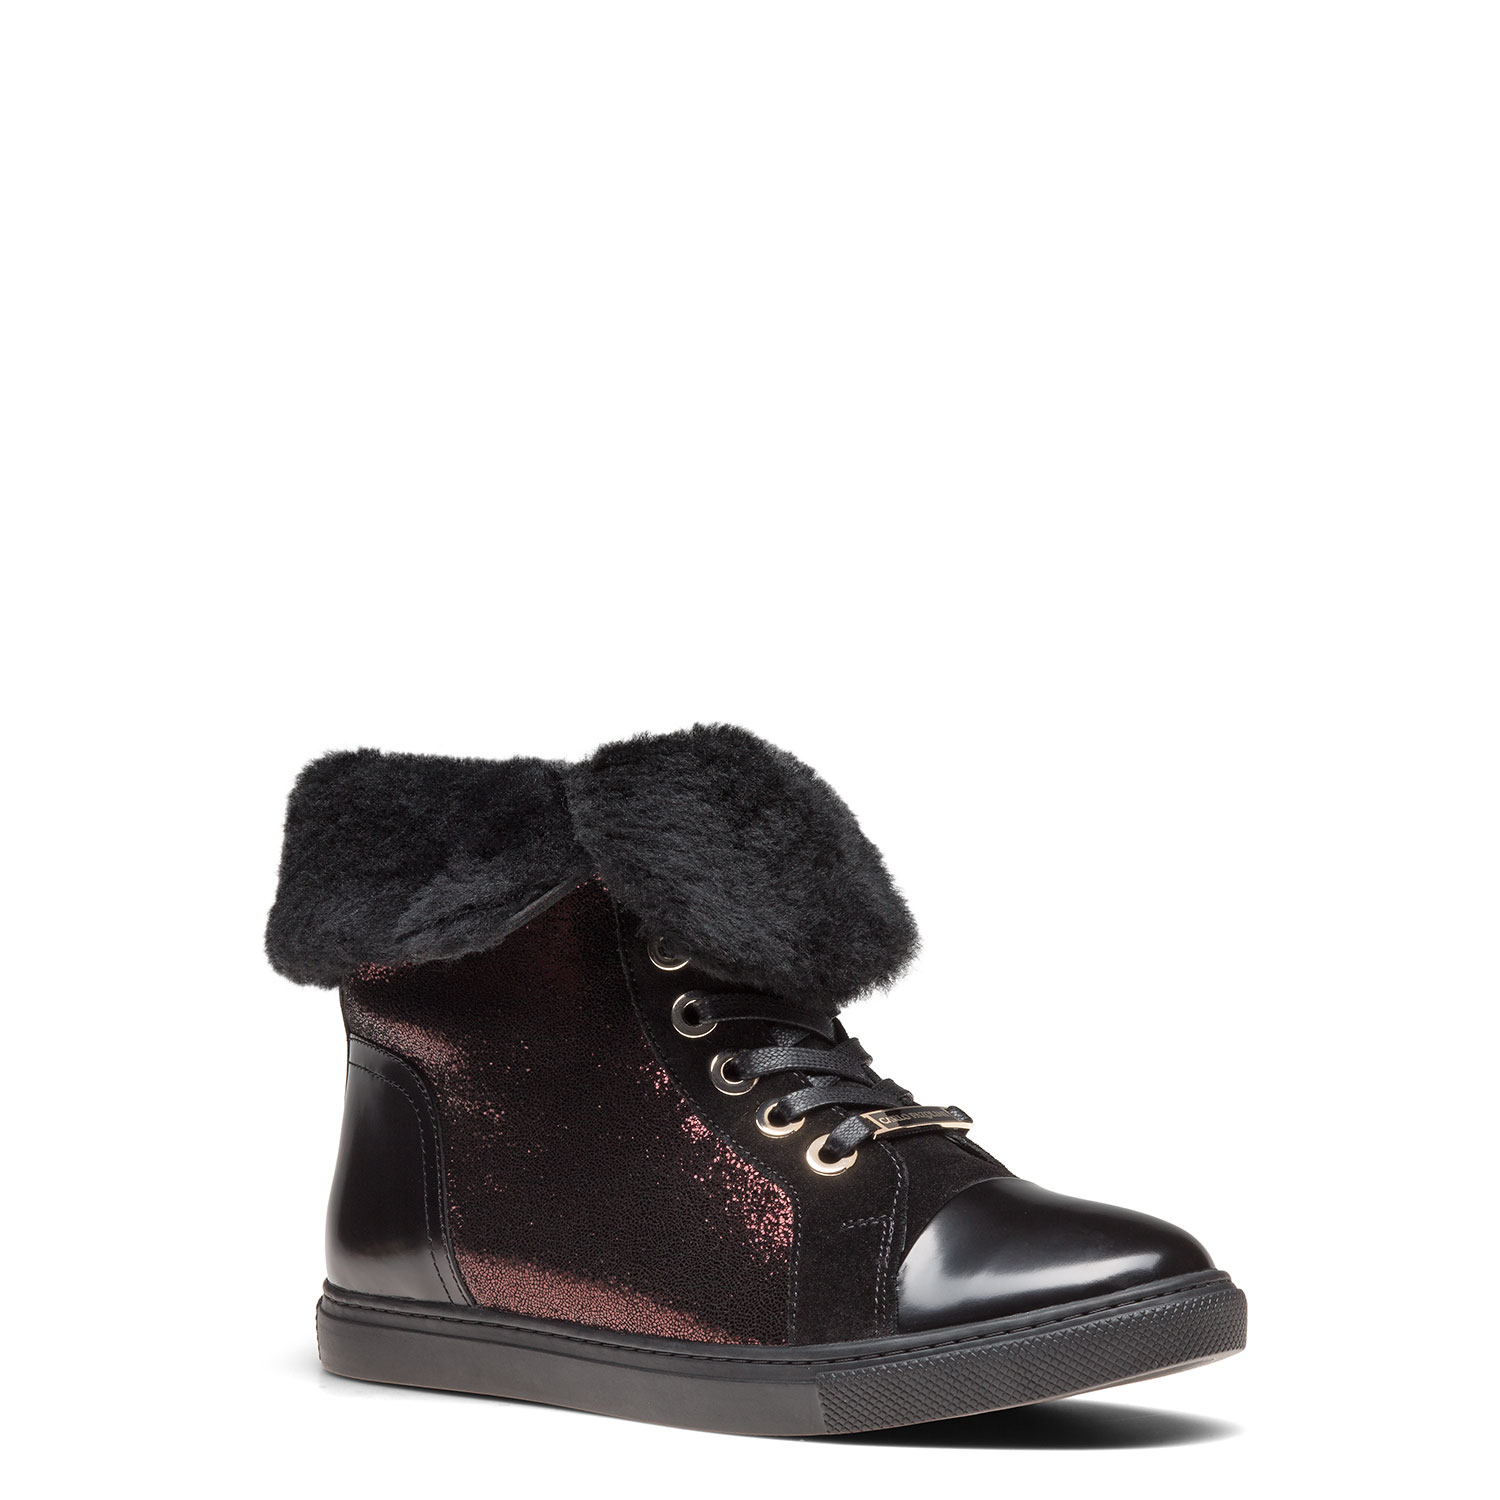 Women's fur-lined ankle boots CARLO PAZOLINI FG-YNK9-11